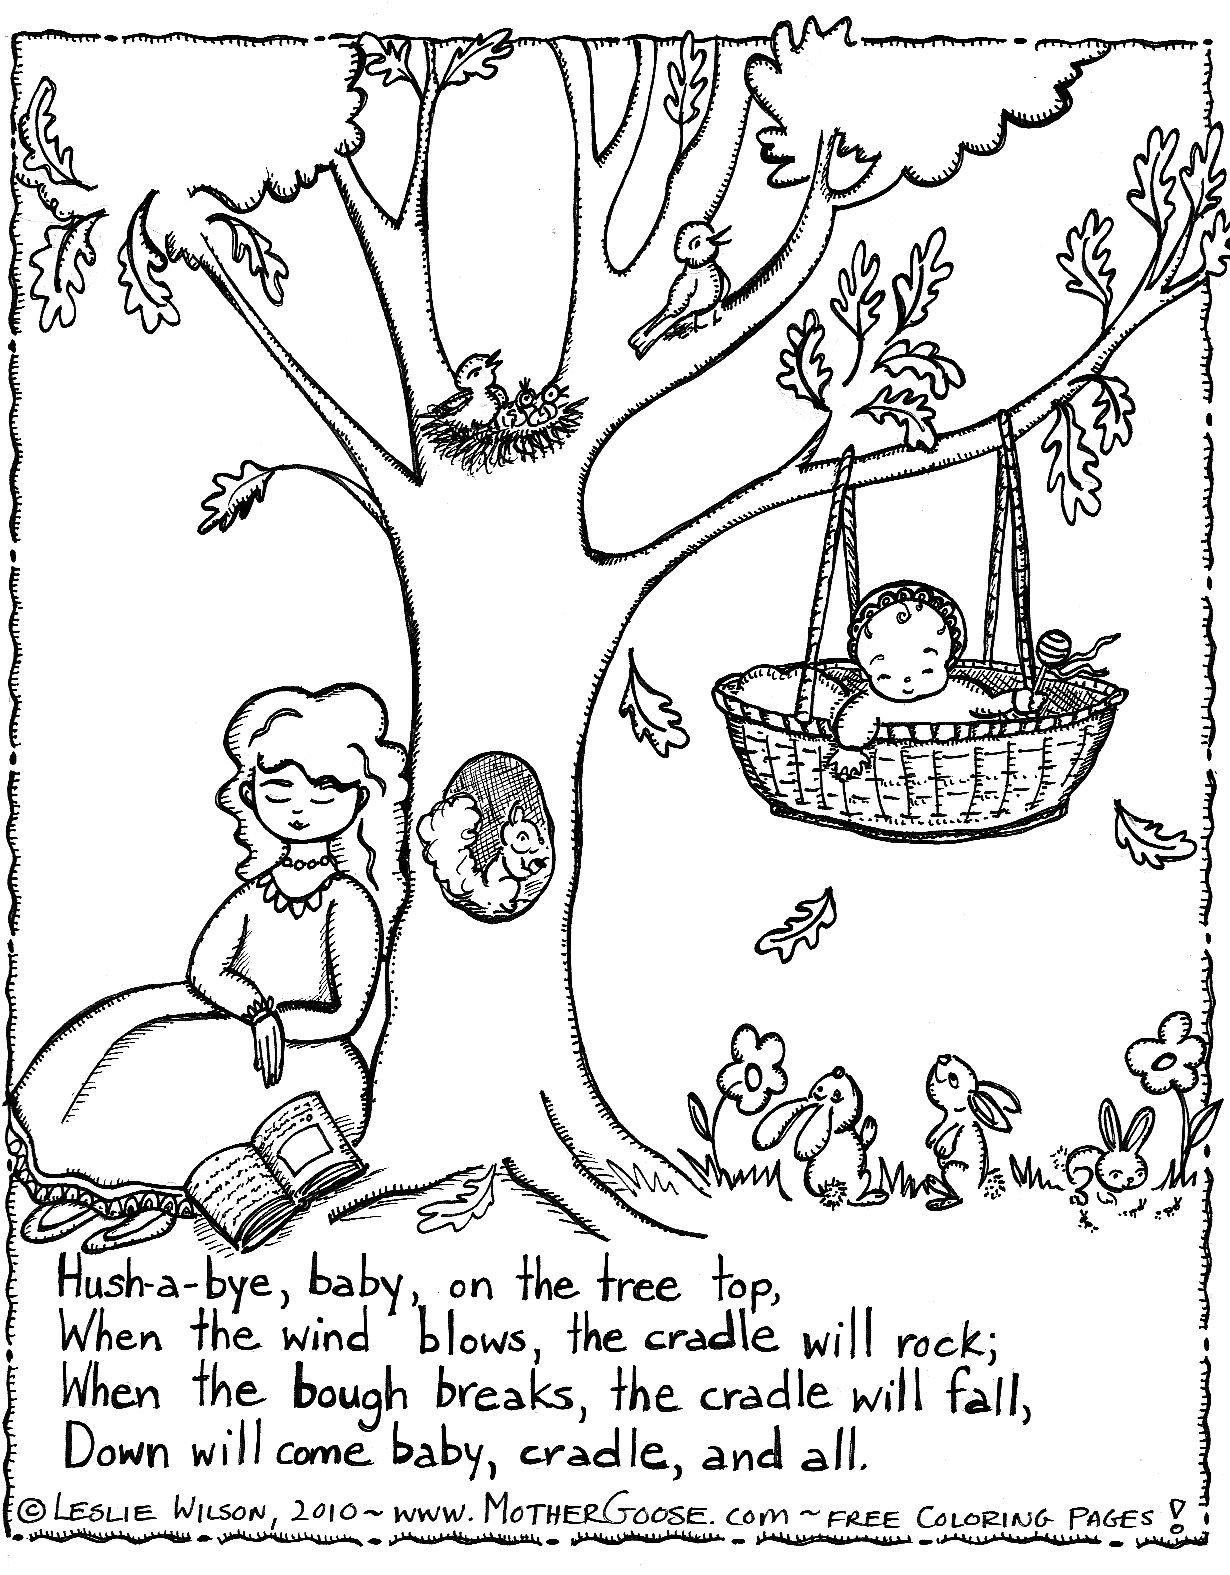 Nursery rhyme coloring page Teaching Nursery RhymesMother